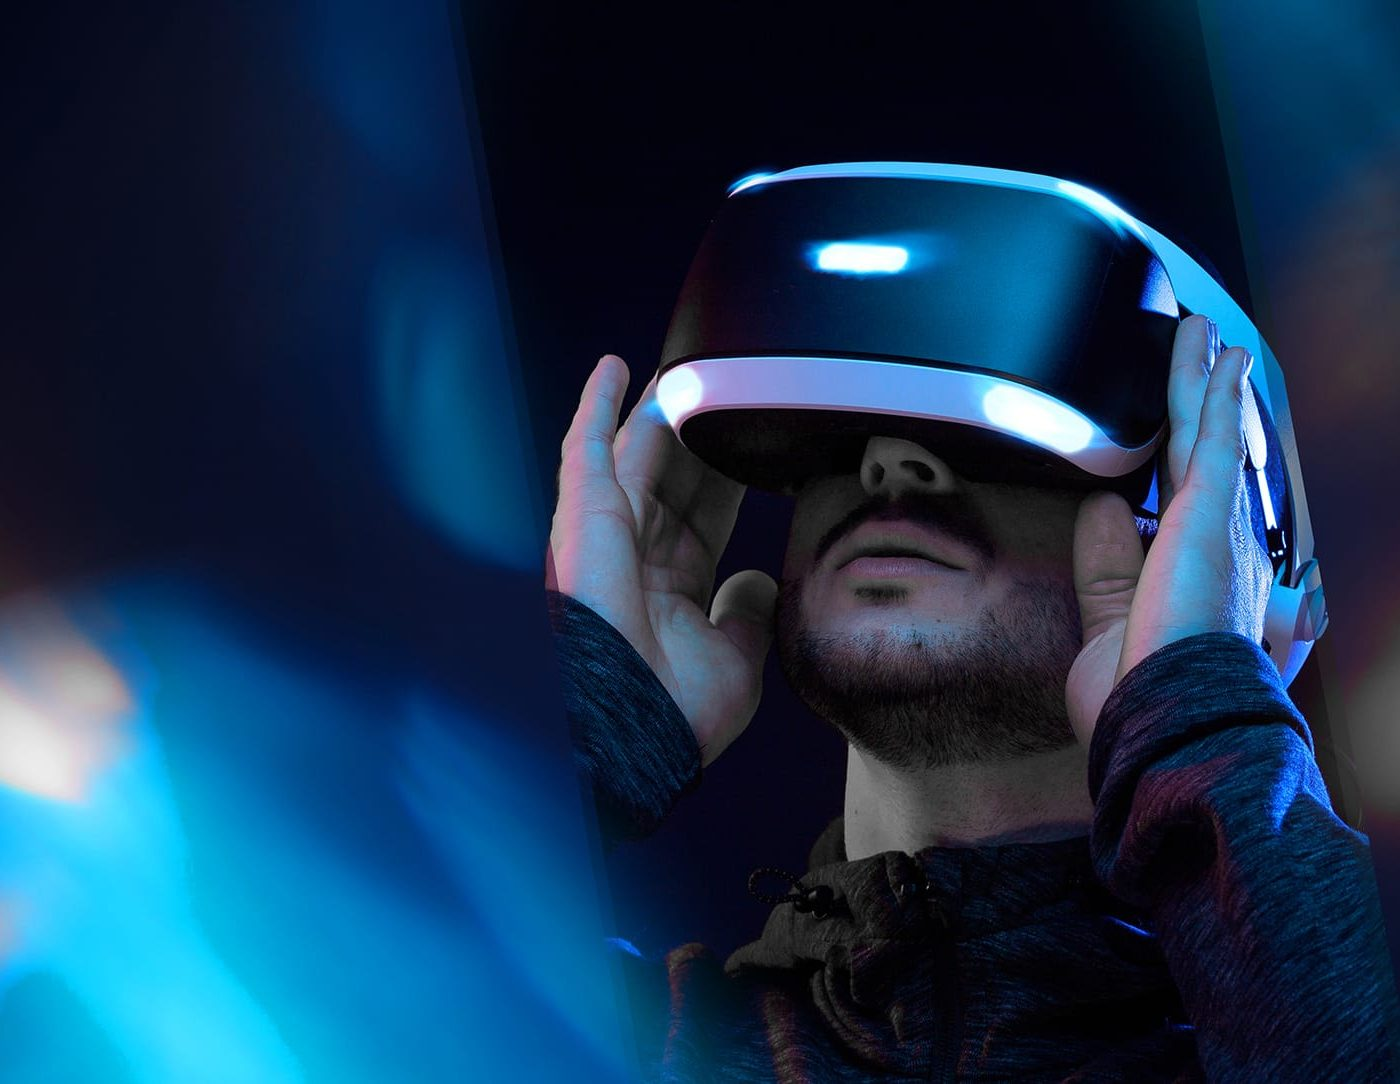 3T Transform technology accessed with a virtual reality headset